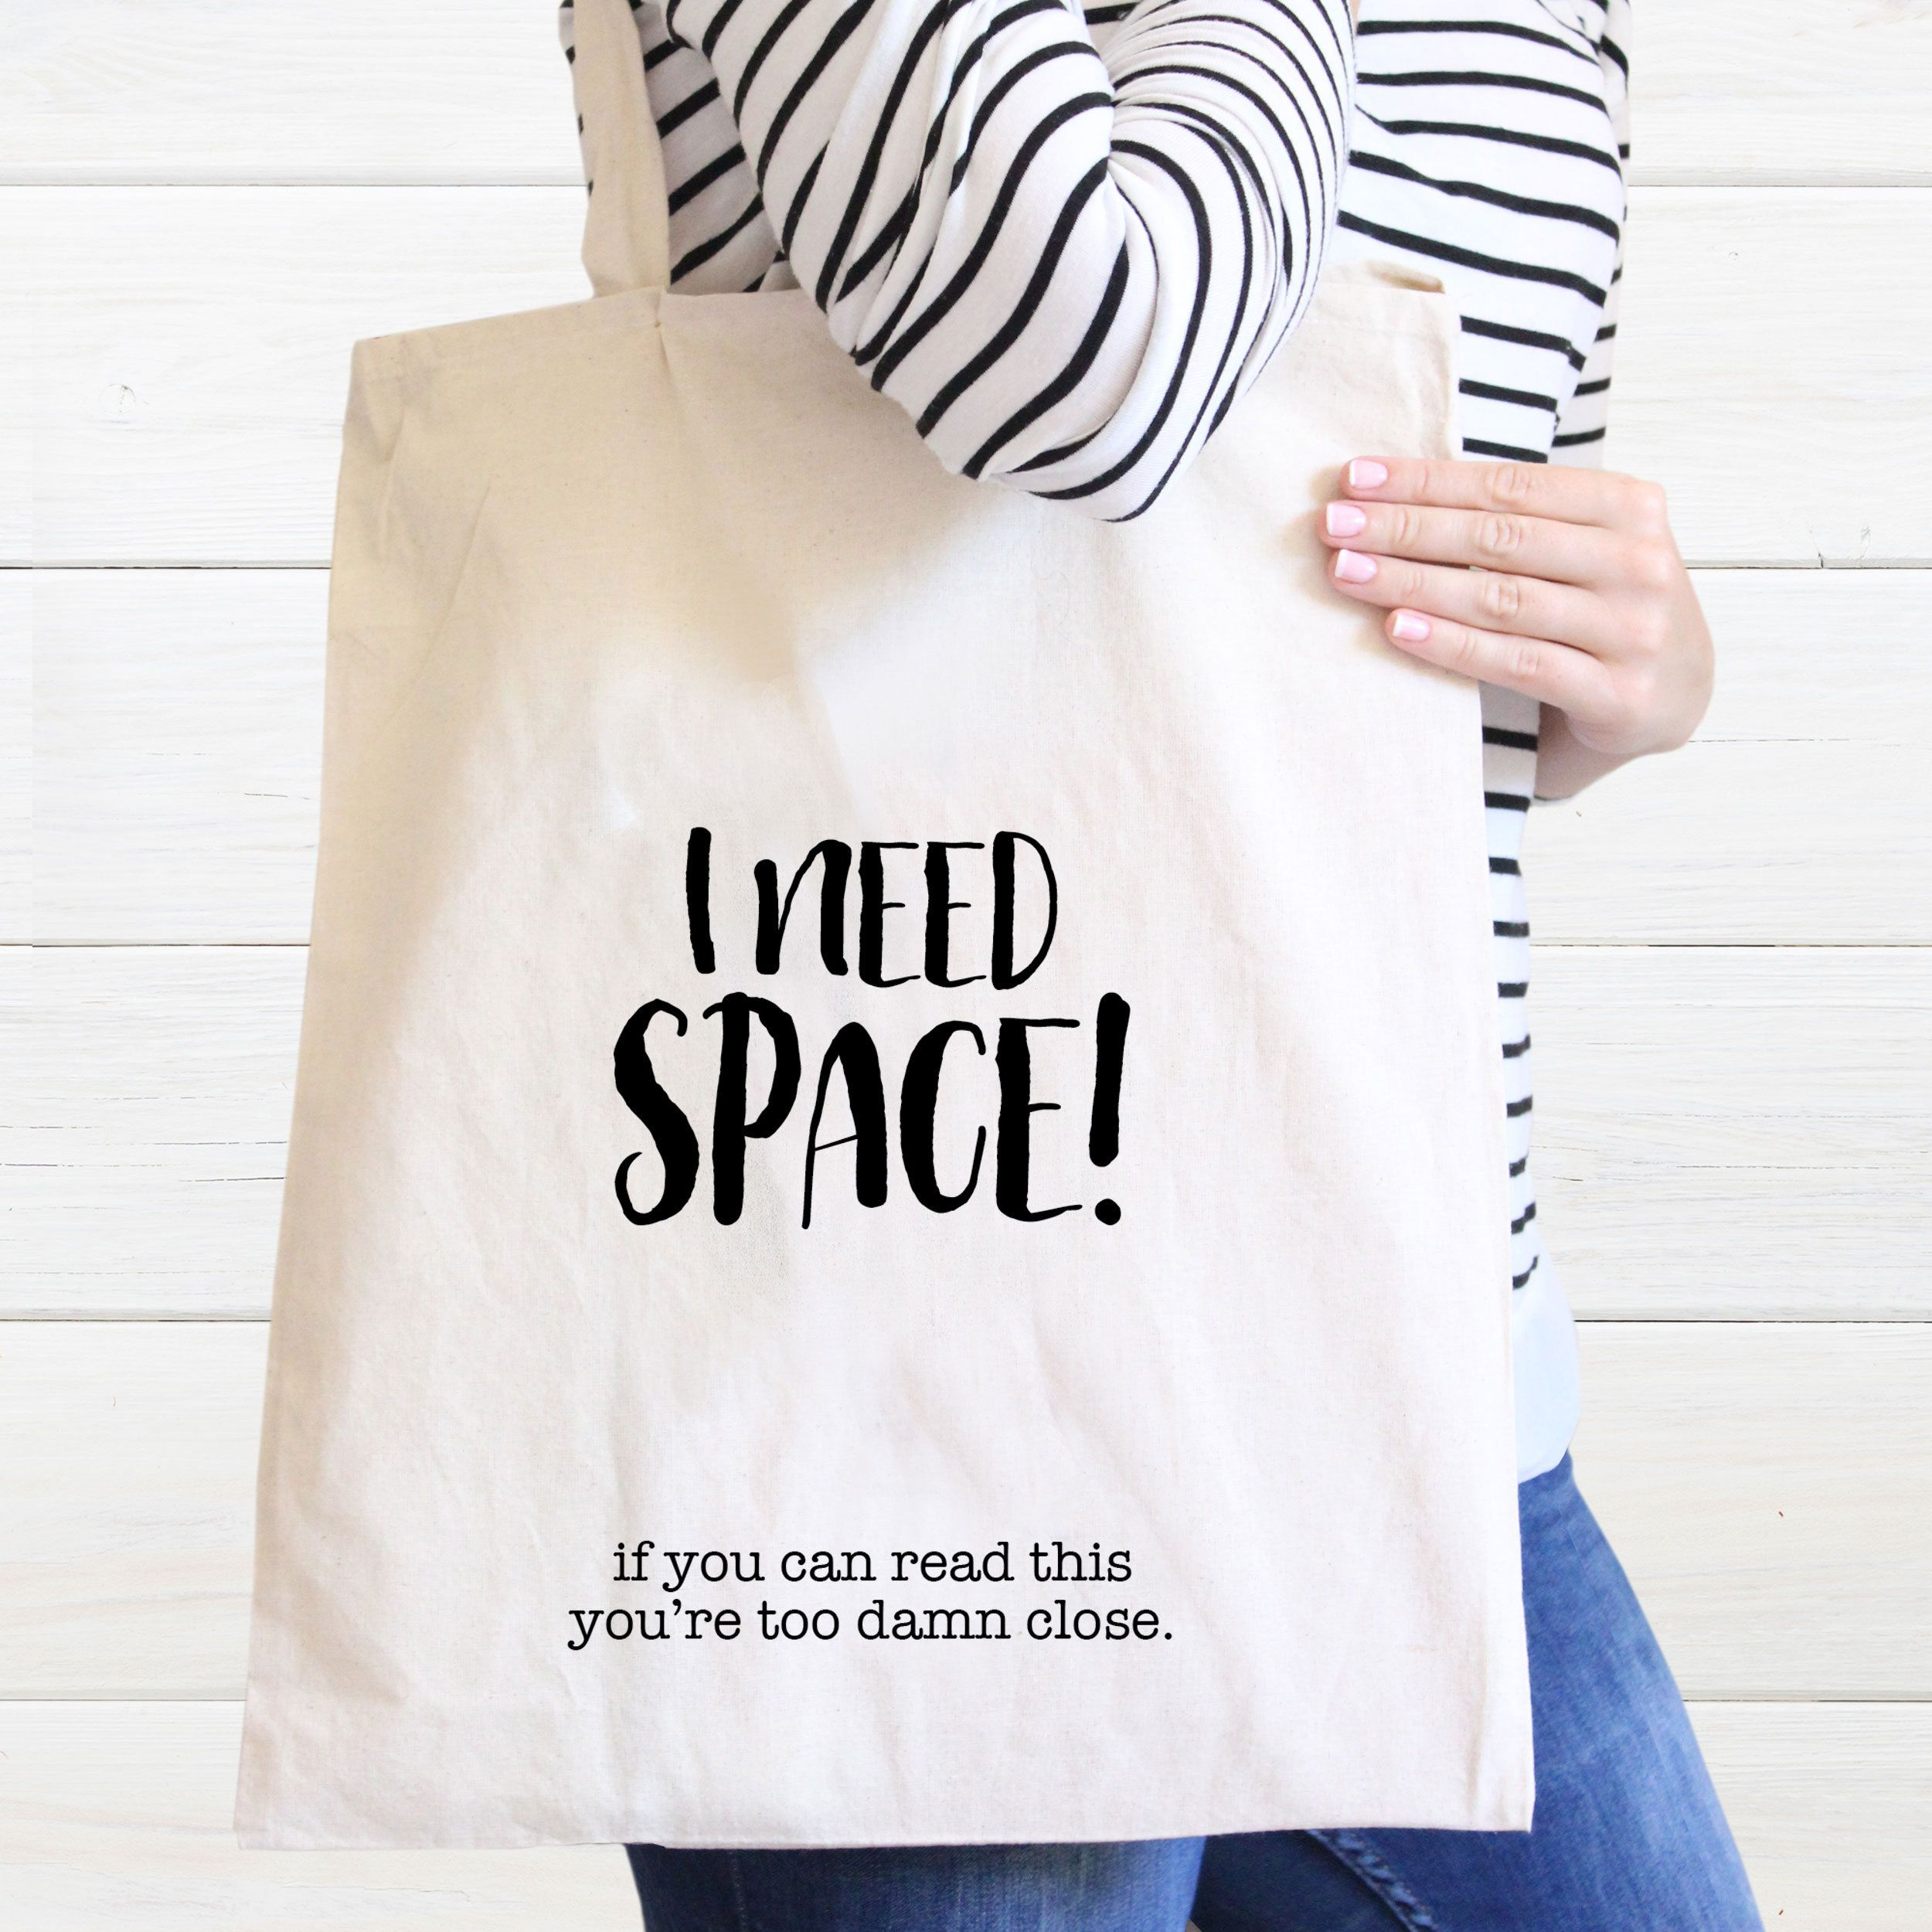 Social Distancing Tote Social Distance Bag Funny Social Etsy In 2020 Funny Tote Bags Unique Tote Bag Best Tote Bags